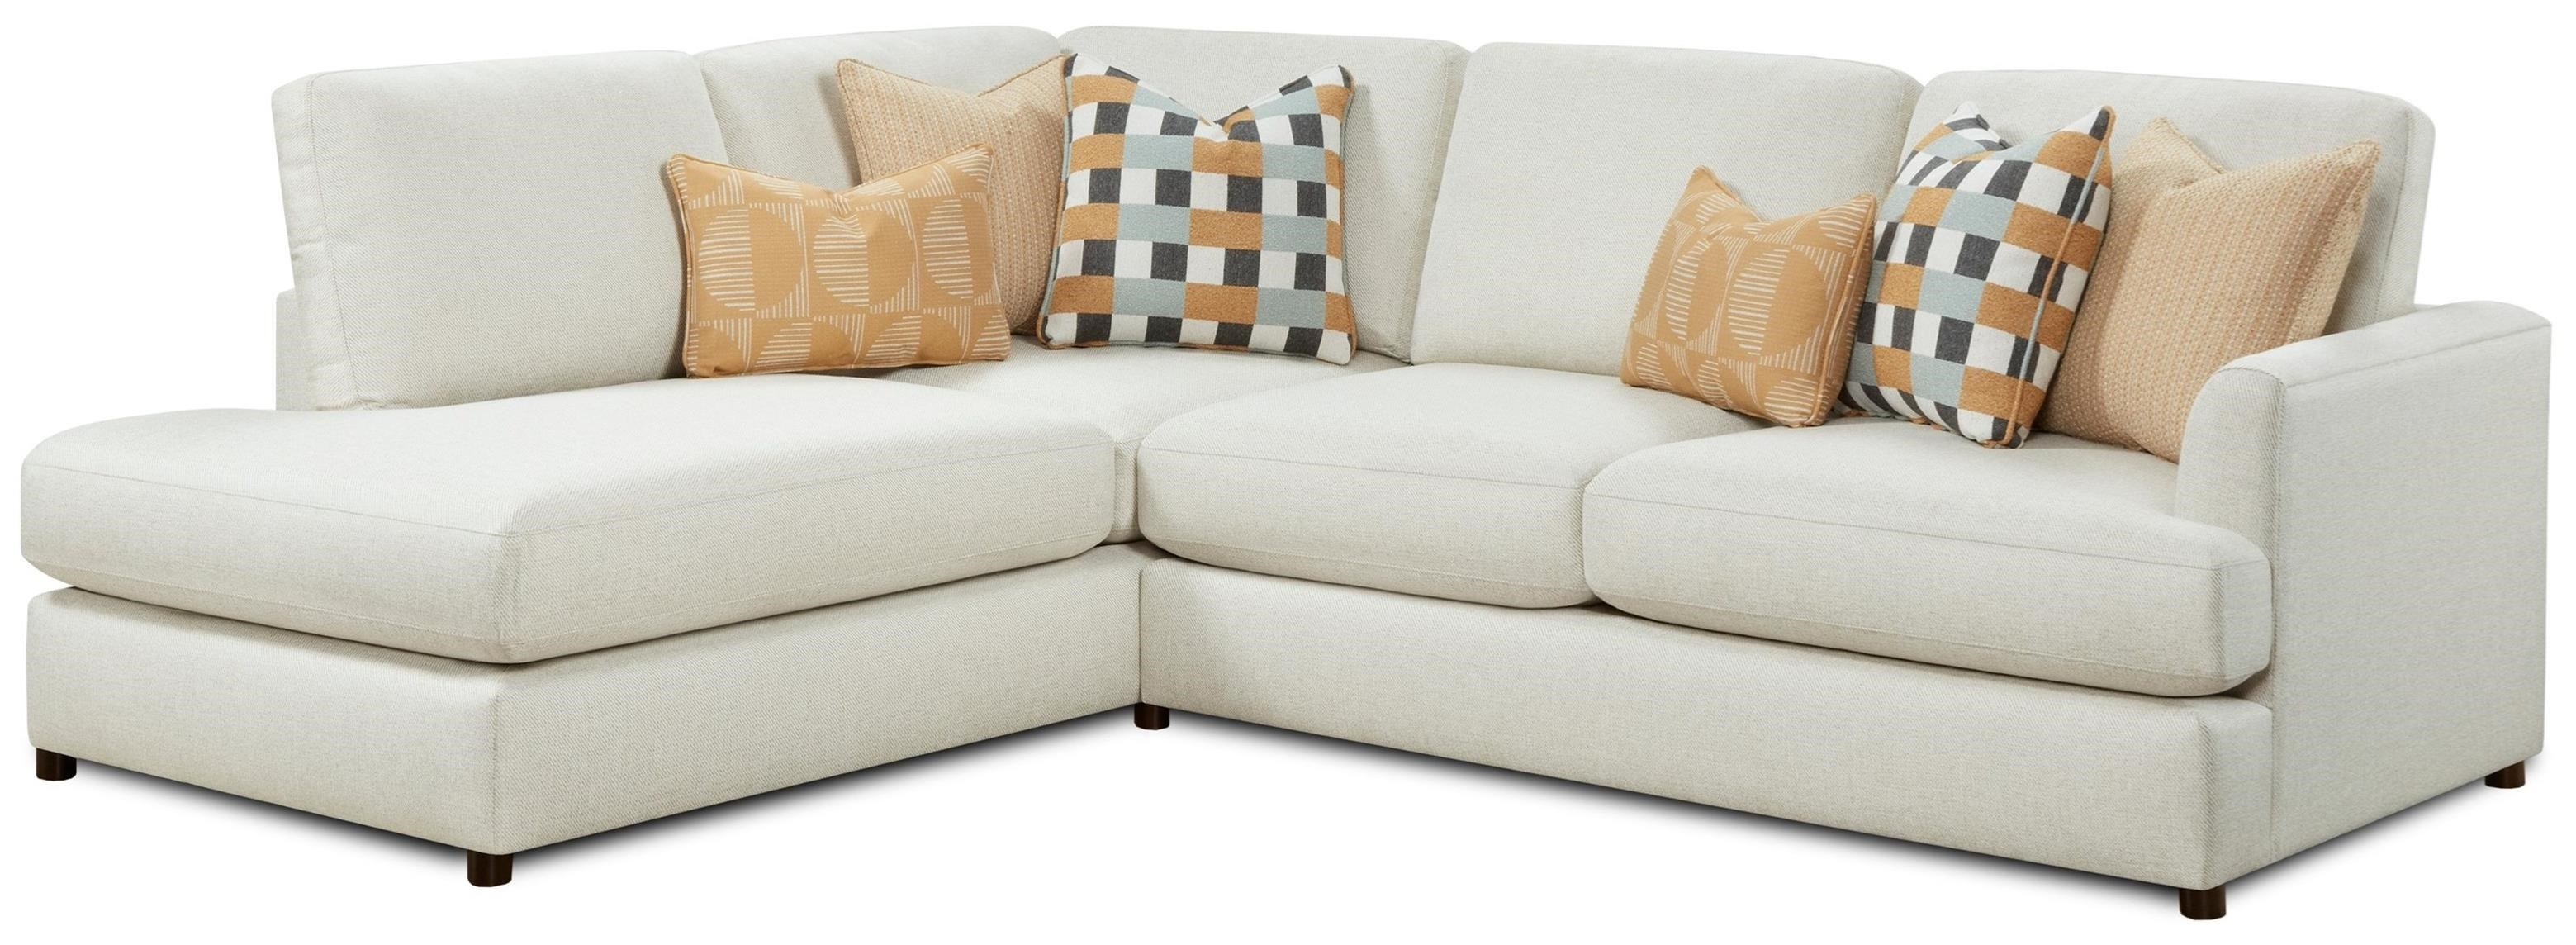 23-00 2-Piece Sectional with Chaise by FN at Lindy's Furniture Company